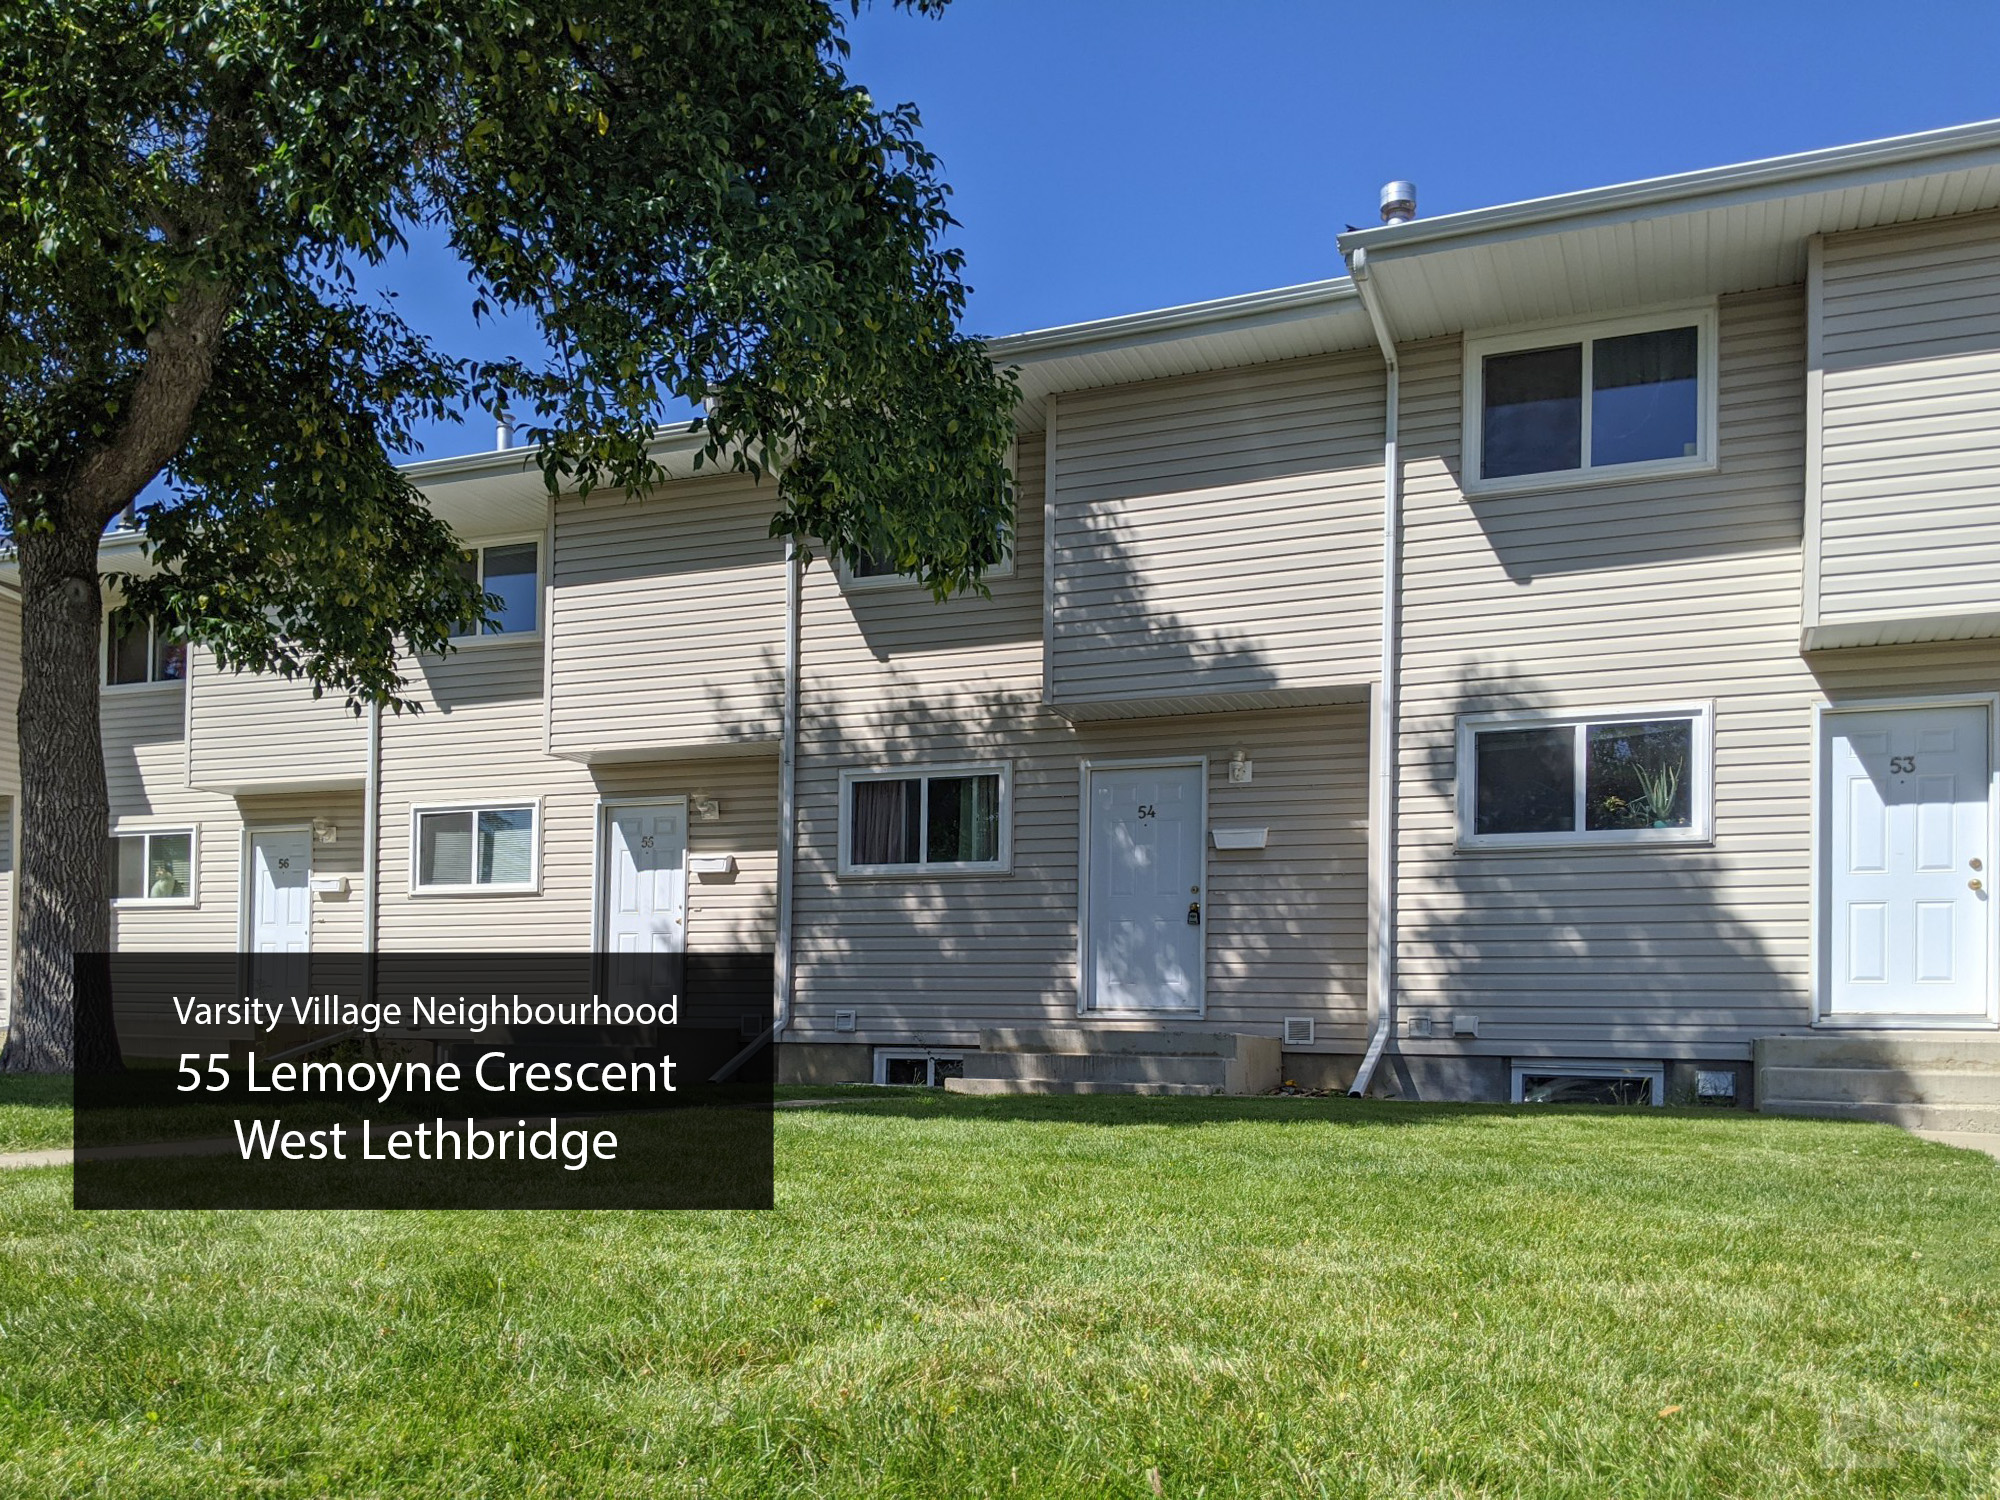 55 Lemoyne Crescent West Lethbridge (Unit 54) Key Image